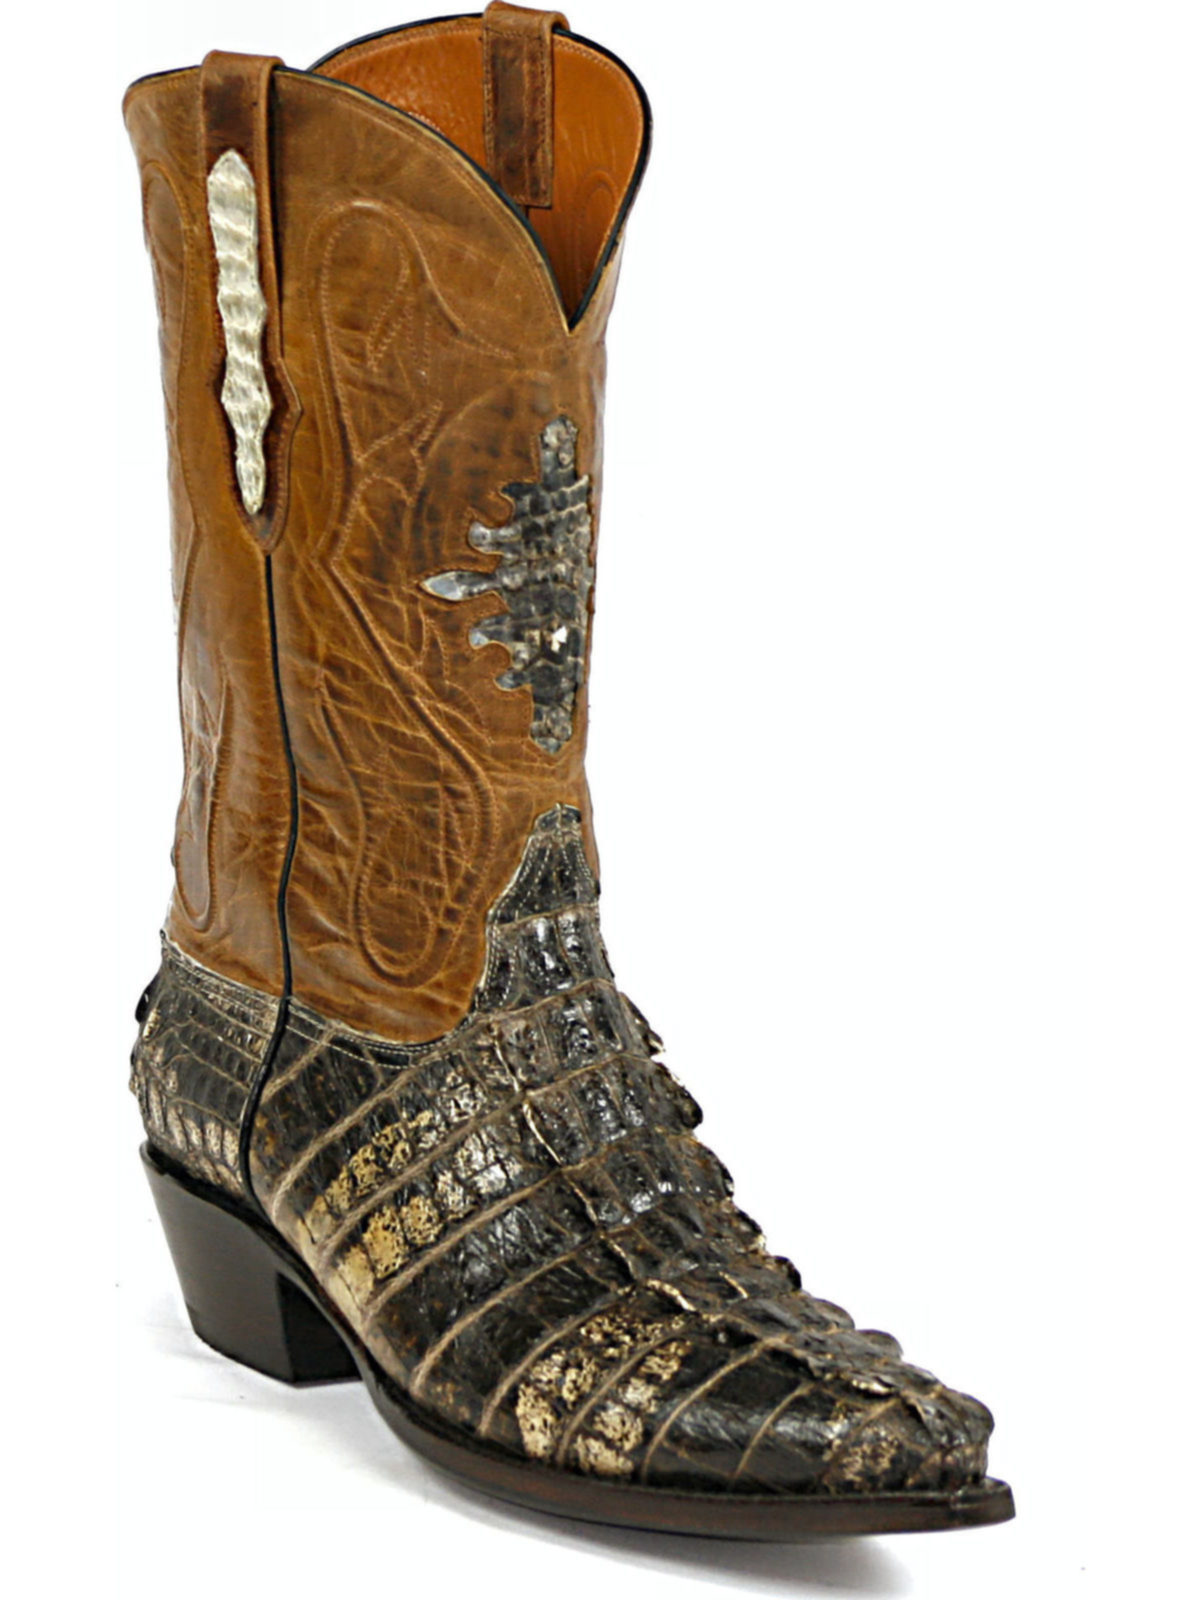 Bootamerica Black Jack Boots Shield Inlay With Cord